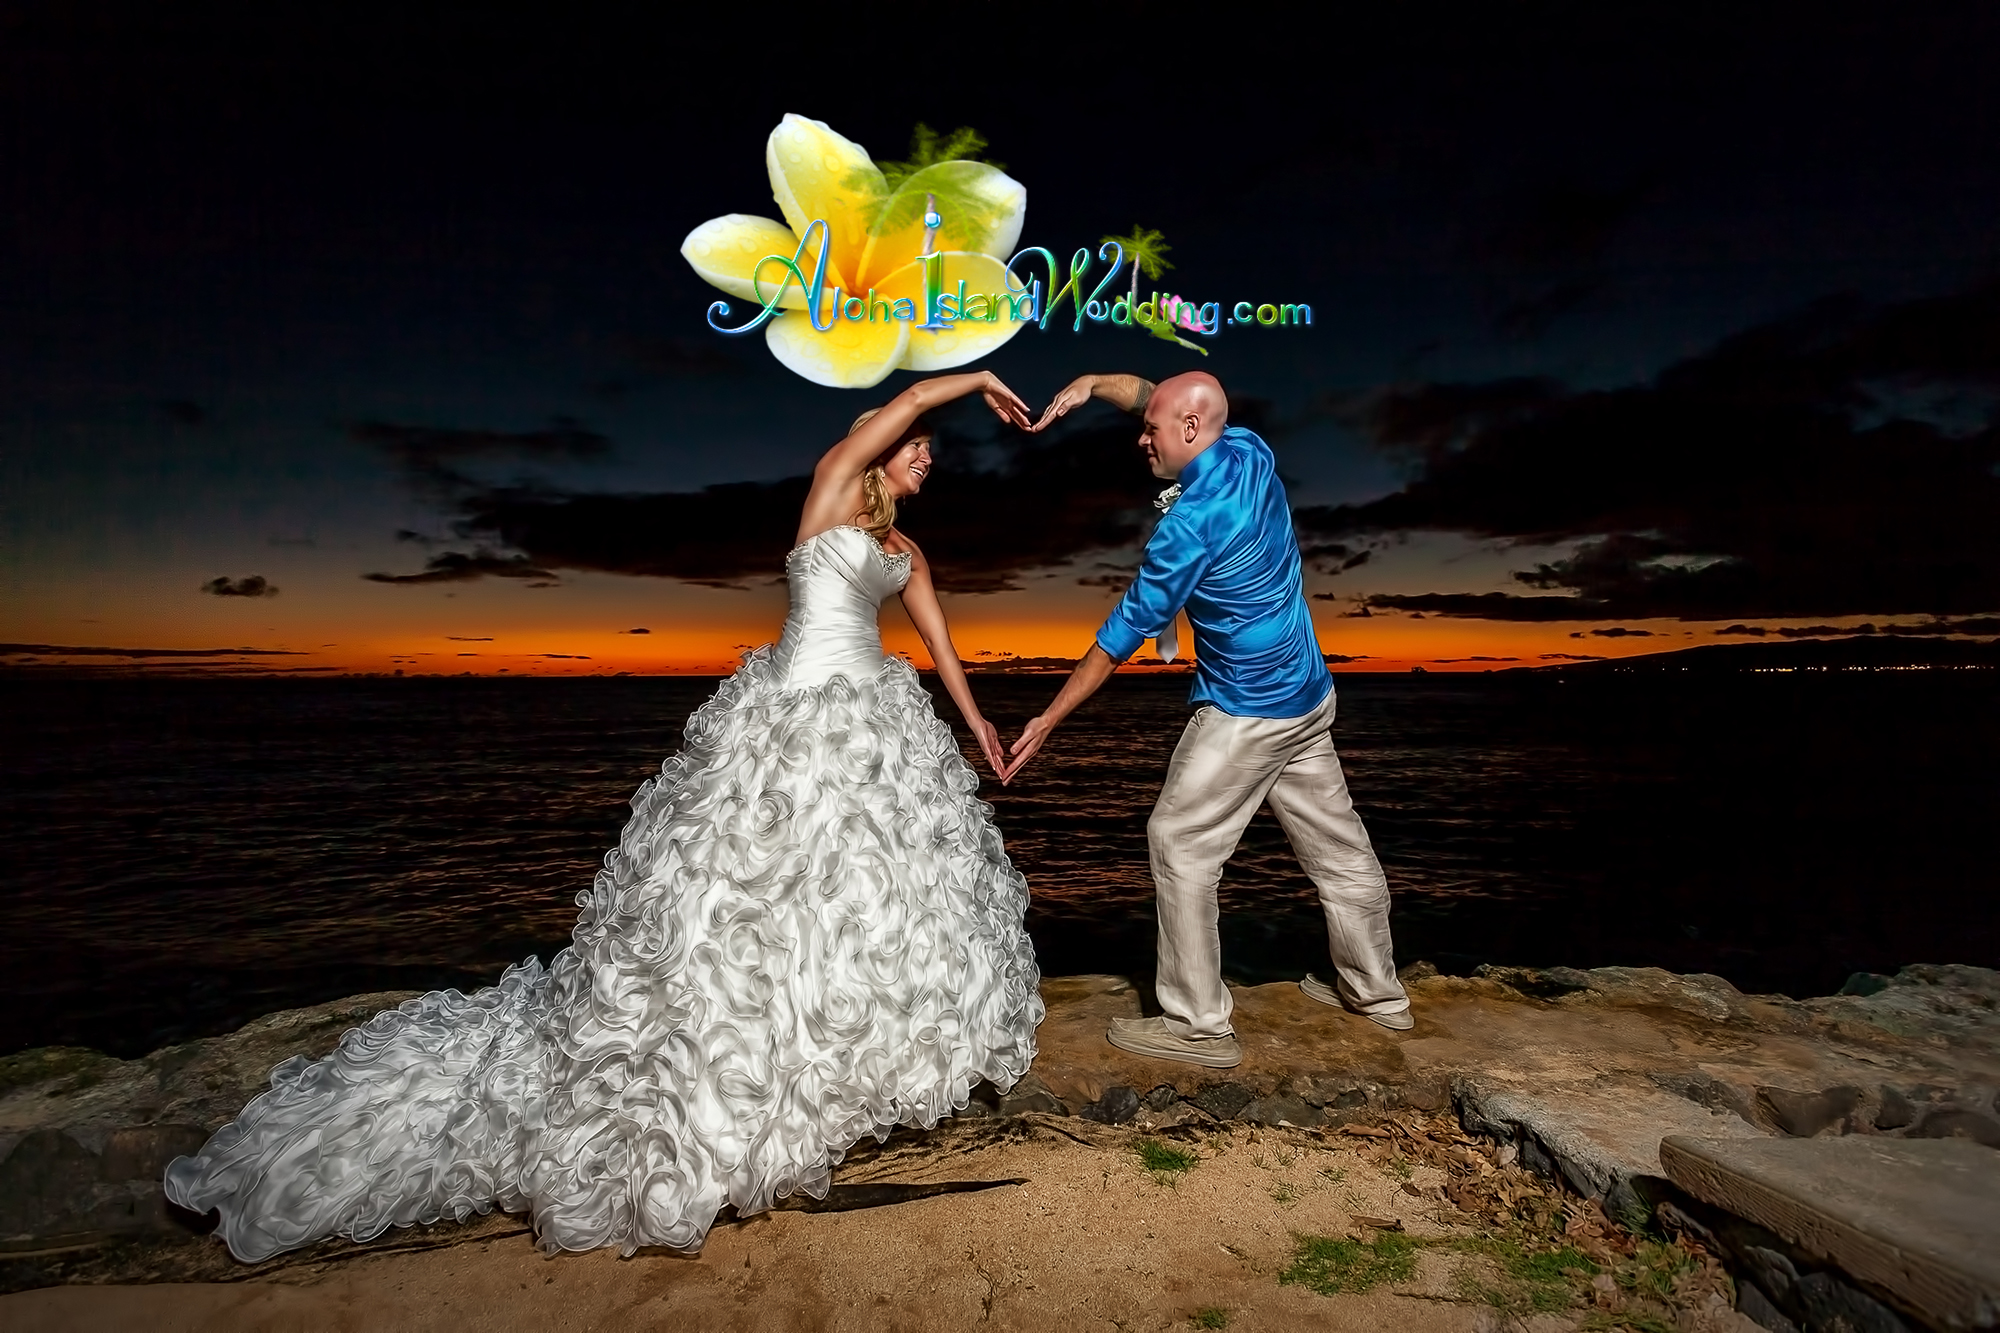 Hawaii sunset wedding picture - www.